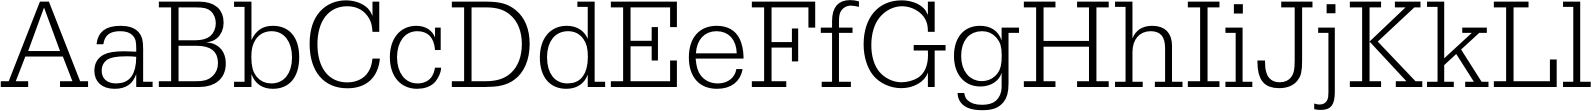 Egyptienne URW Narrow Light Font